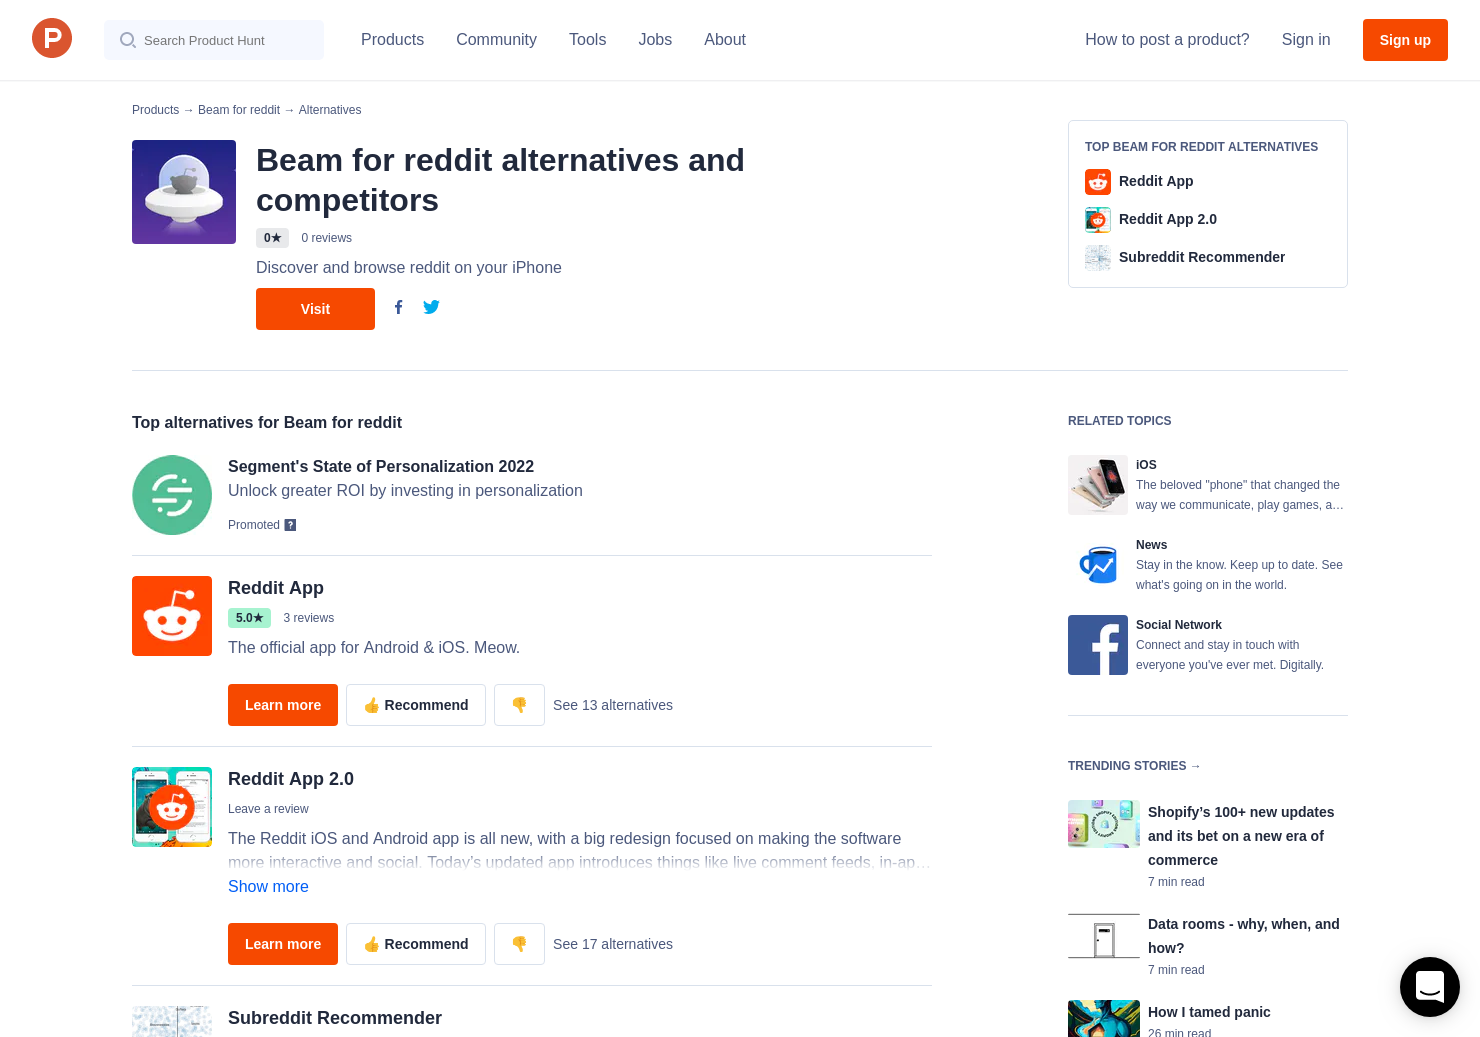 11 Alternatives to Beam for reddit for iPhone | Product Hunt